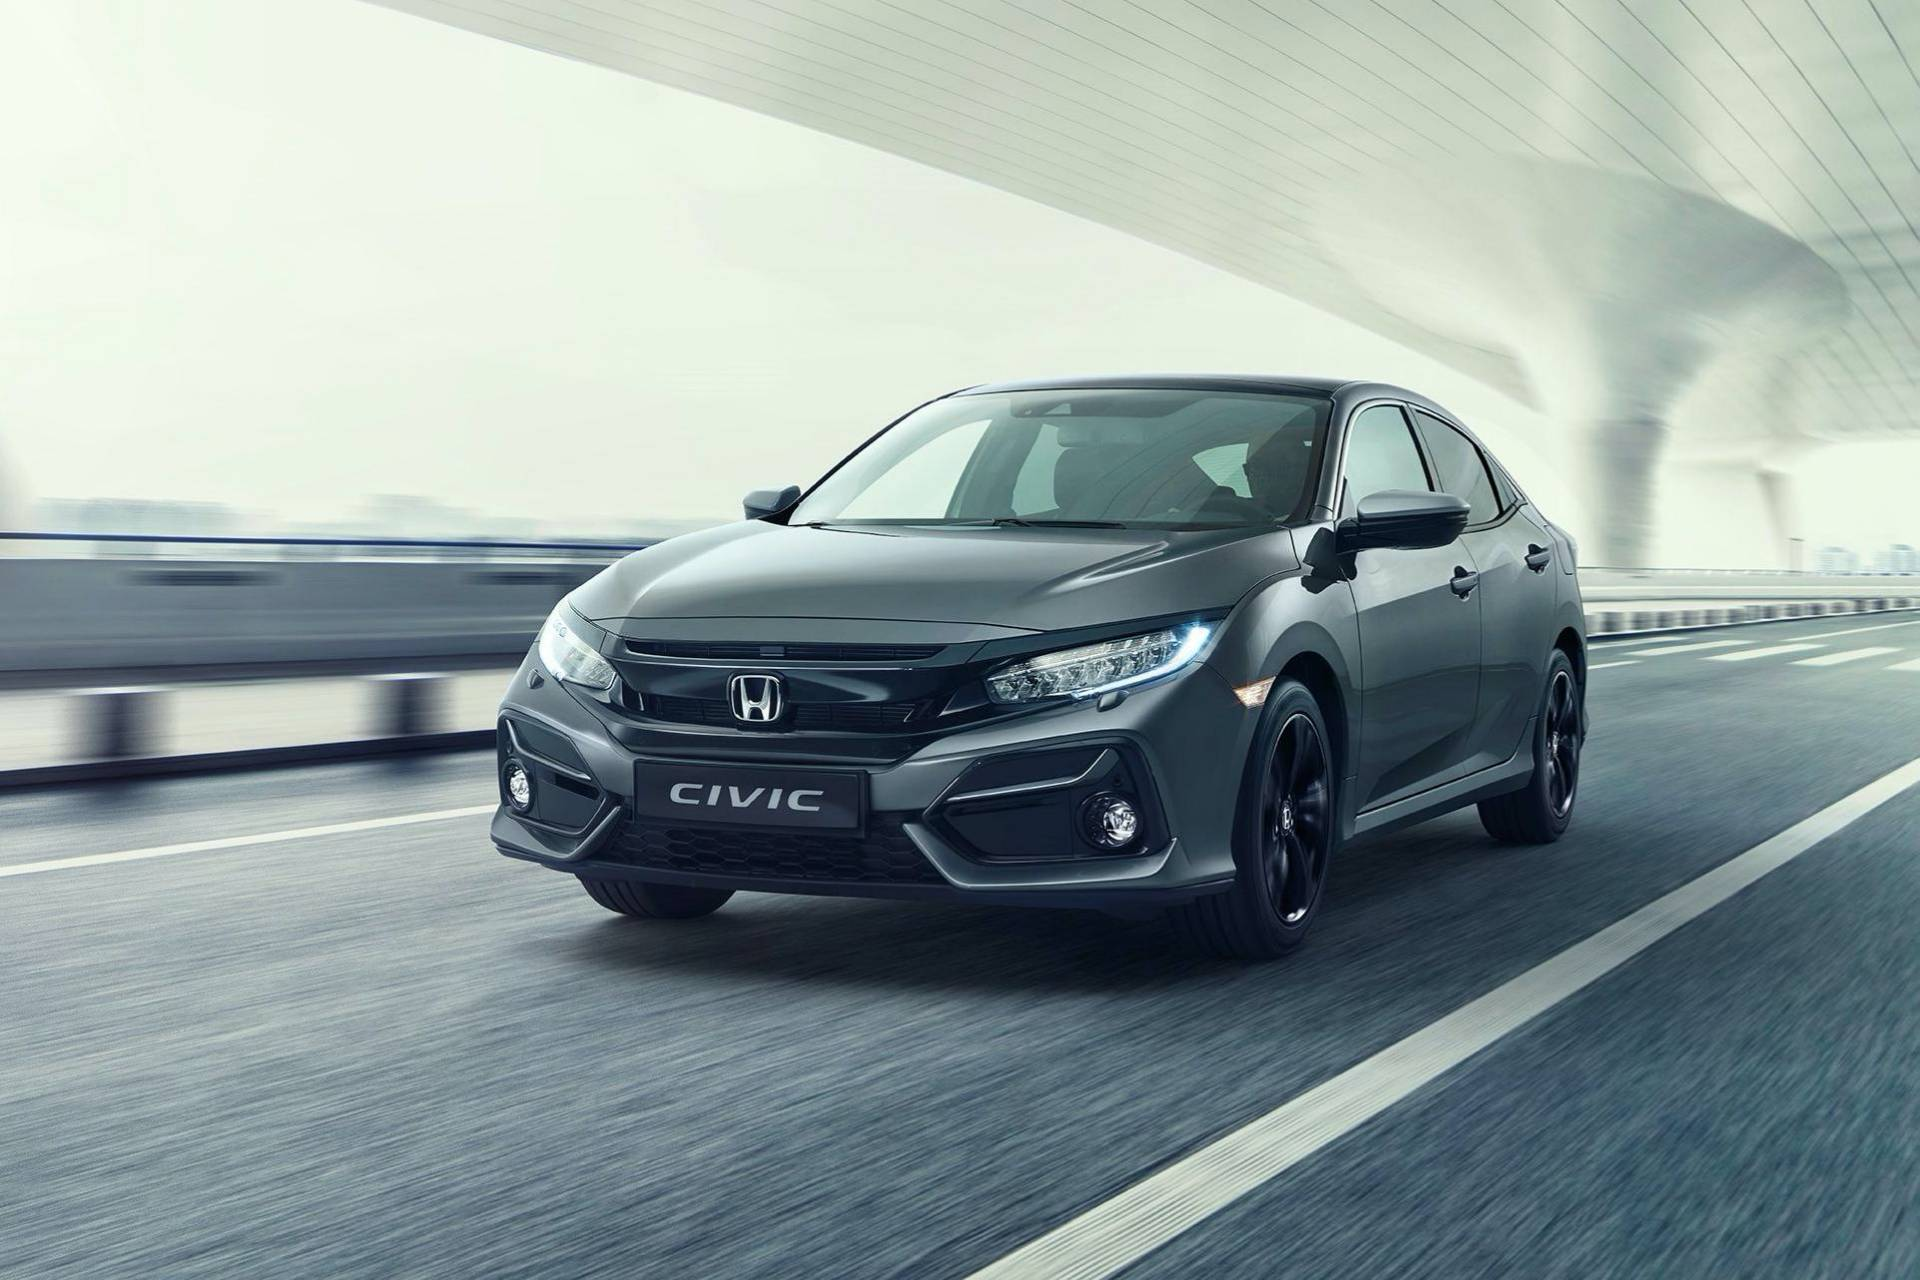 2020-Honda-Civic-Euro-spec-2